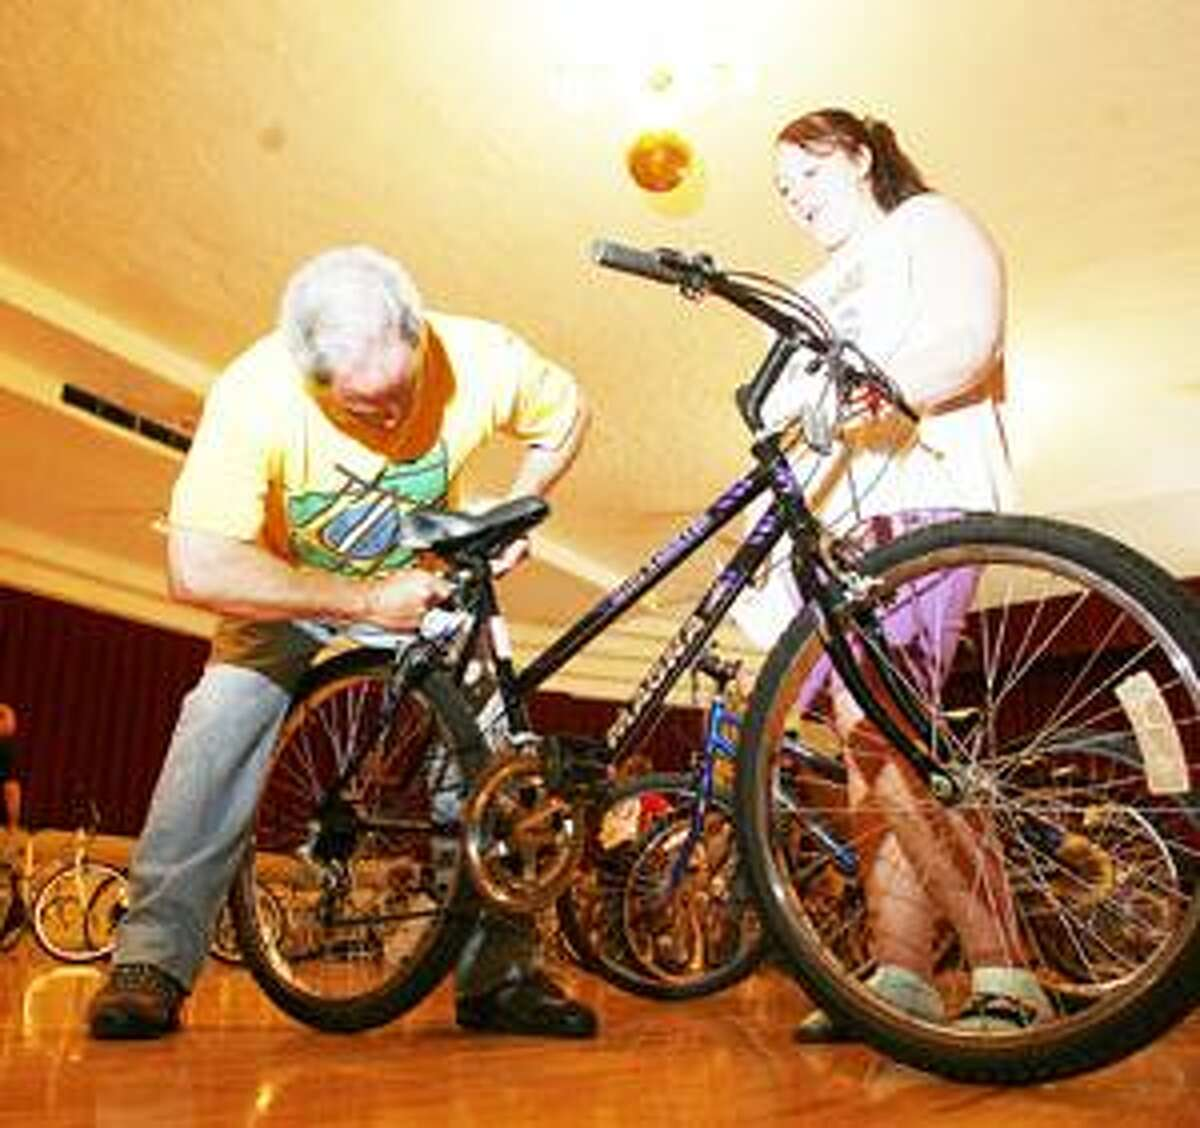 Photo by JOHN HAEGER Robin White of Hamilton adjusts the seat on a bike for Paige VanDusen,14, of Oneida, during the Community Bike Give Away on Sunday, May 8, 2011 in Oneida.